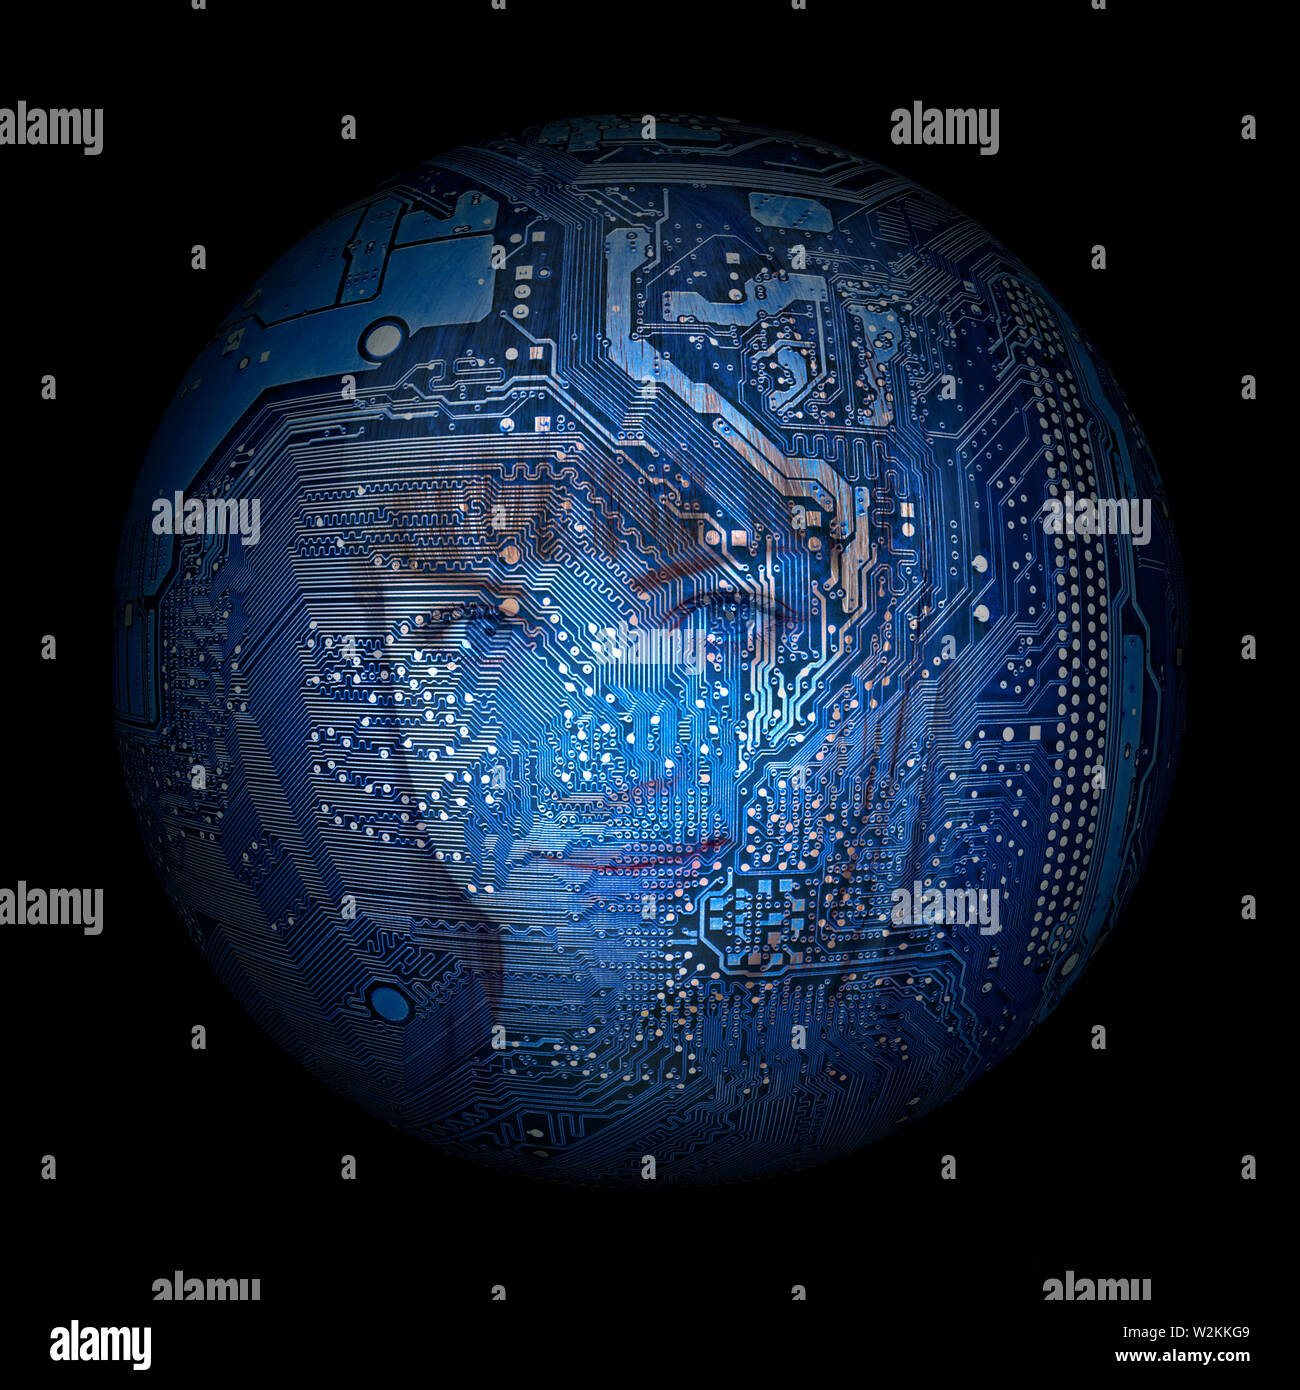 woman's face on the background of electronic digital planet - Stock Image